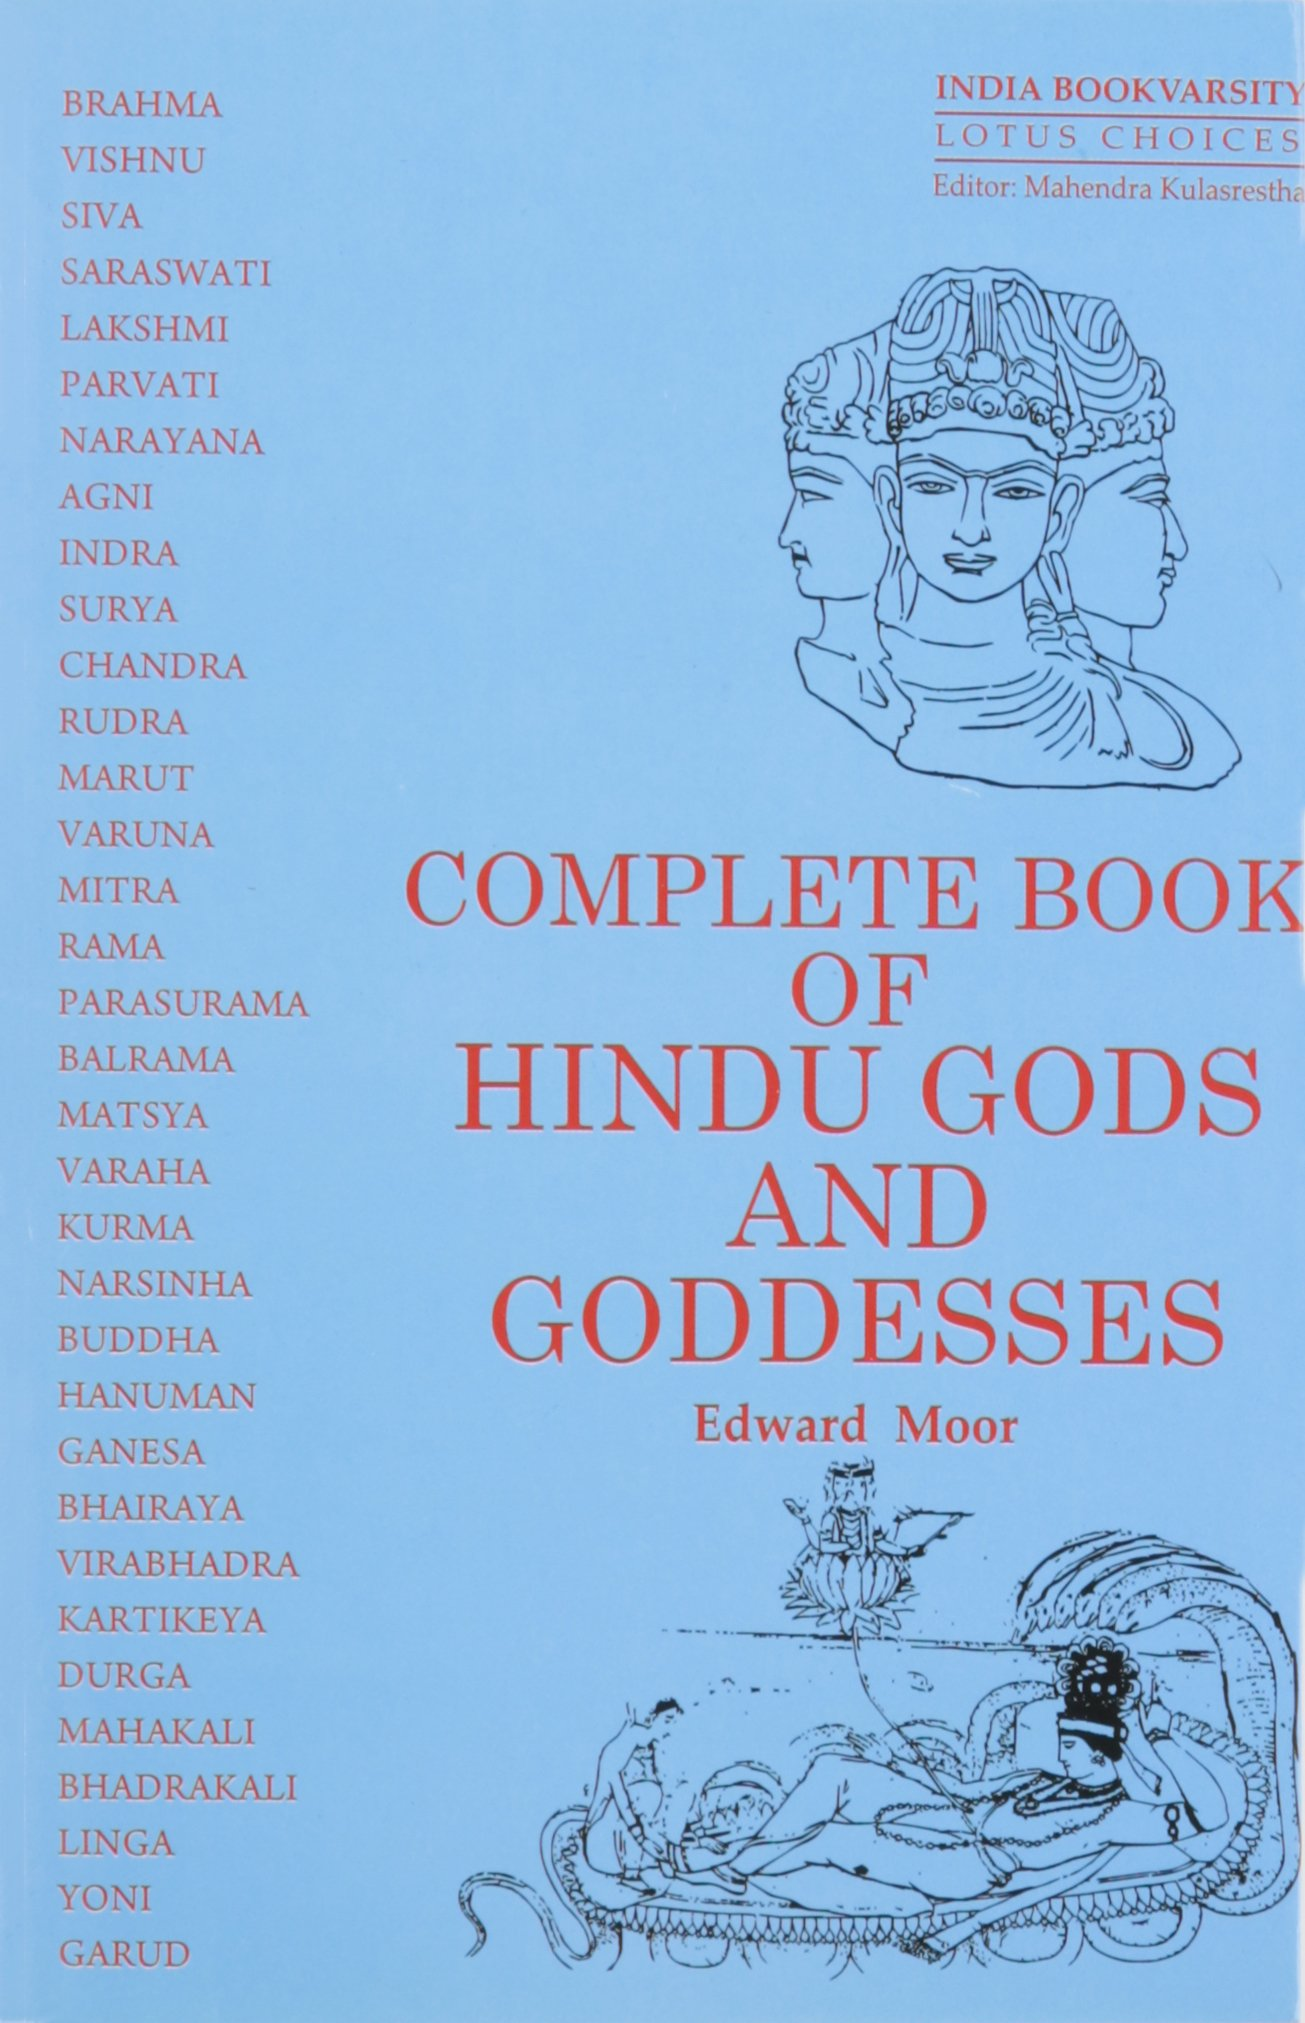 Complete Book Of Hindu Gods And Goddesses Edward Moor